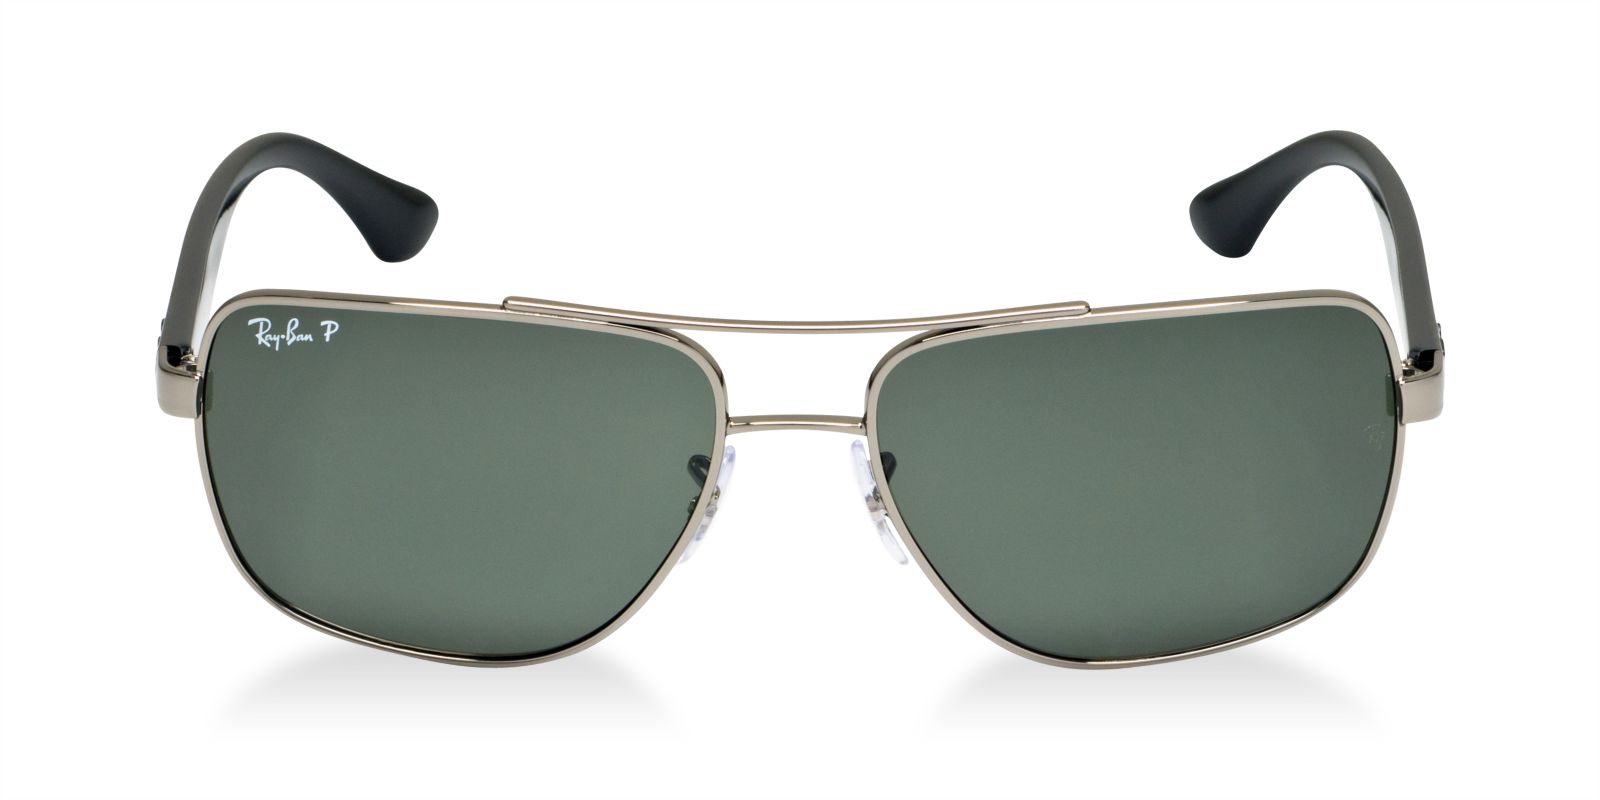 ray ban aviator sunglasses review  ray ban 3483 polarized sunglasses review ray ban 3483 polarized sunglasses review